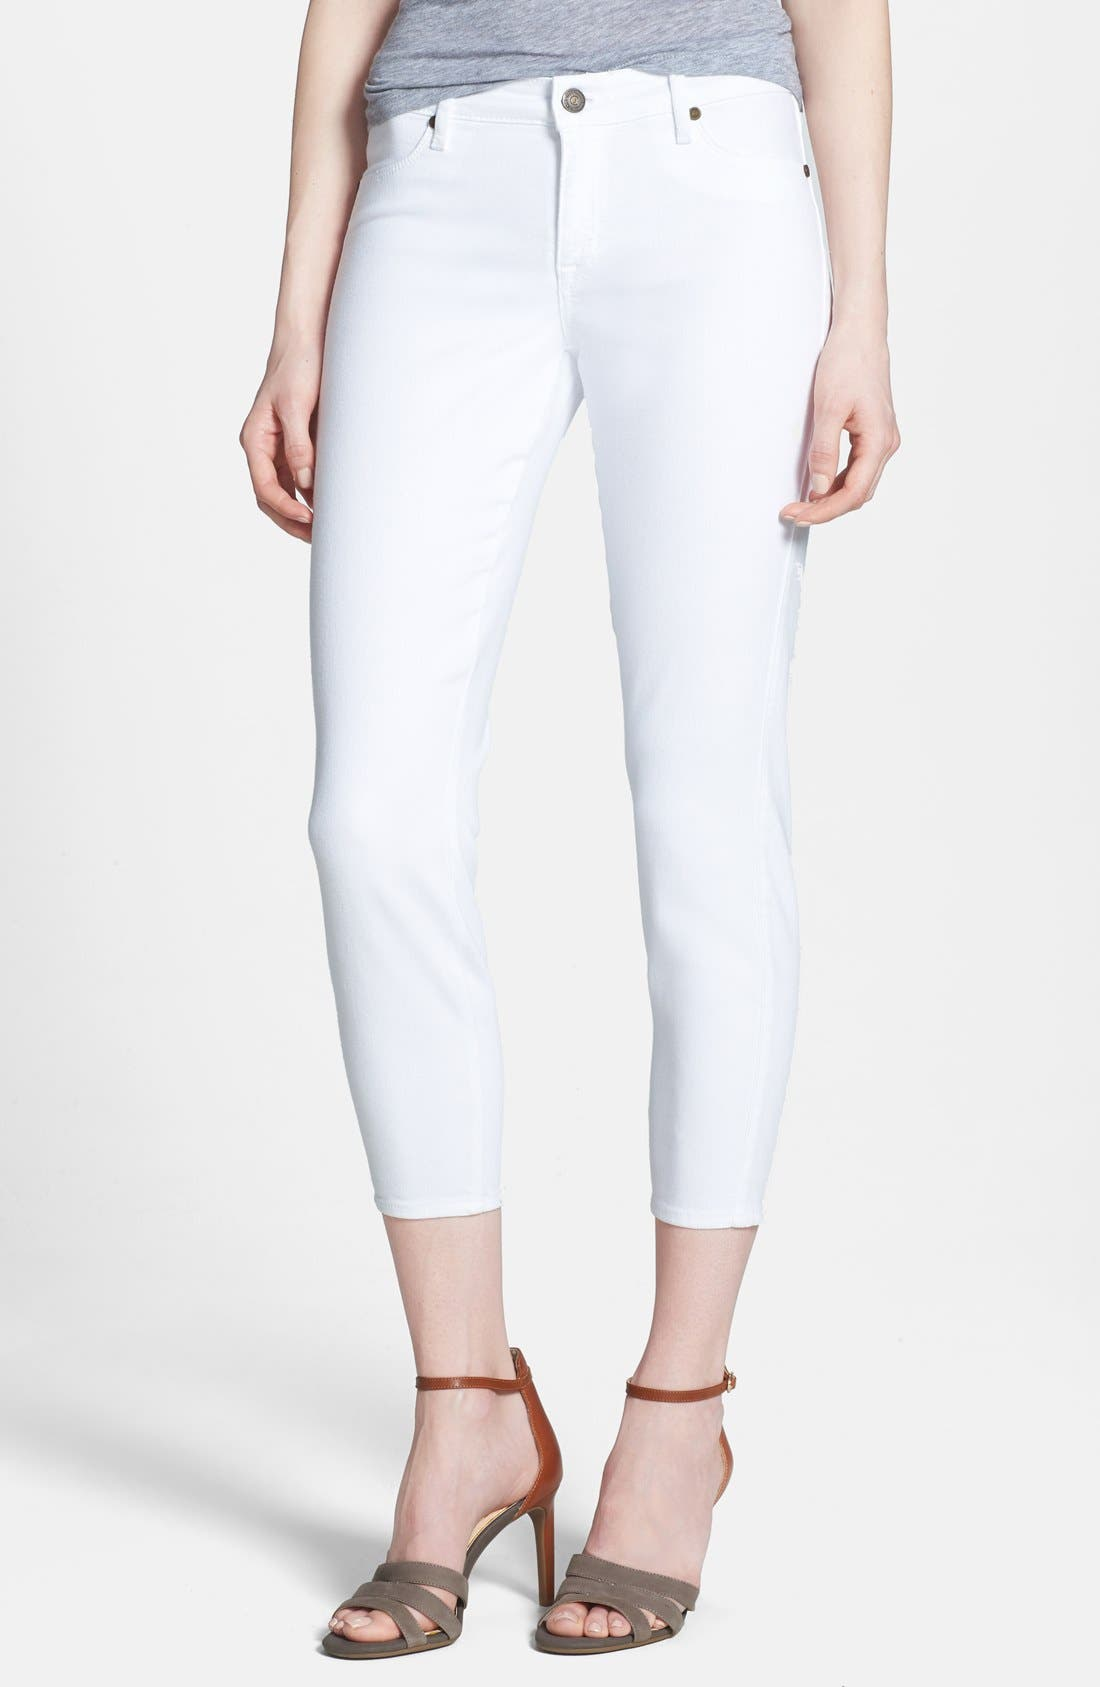 Main Image - CJ by Cookie Johnson 'Believe' Stretch Twill Crop Leggings